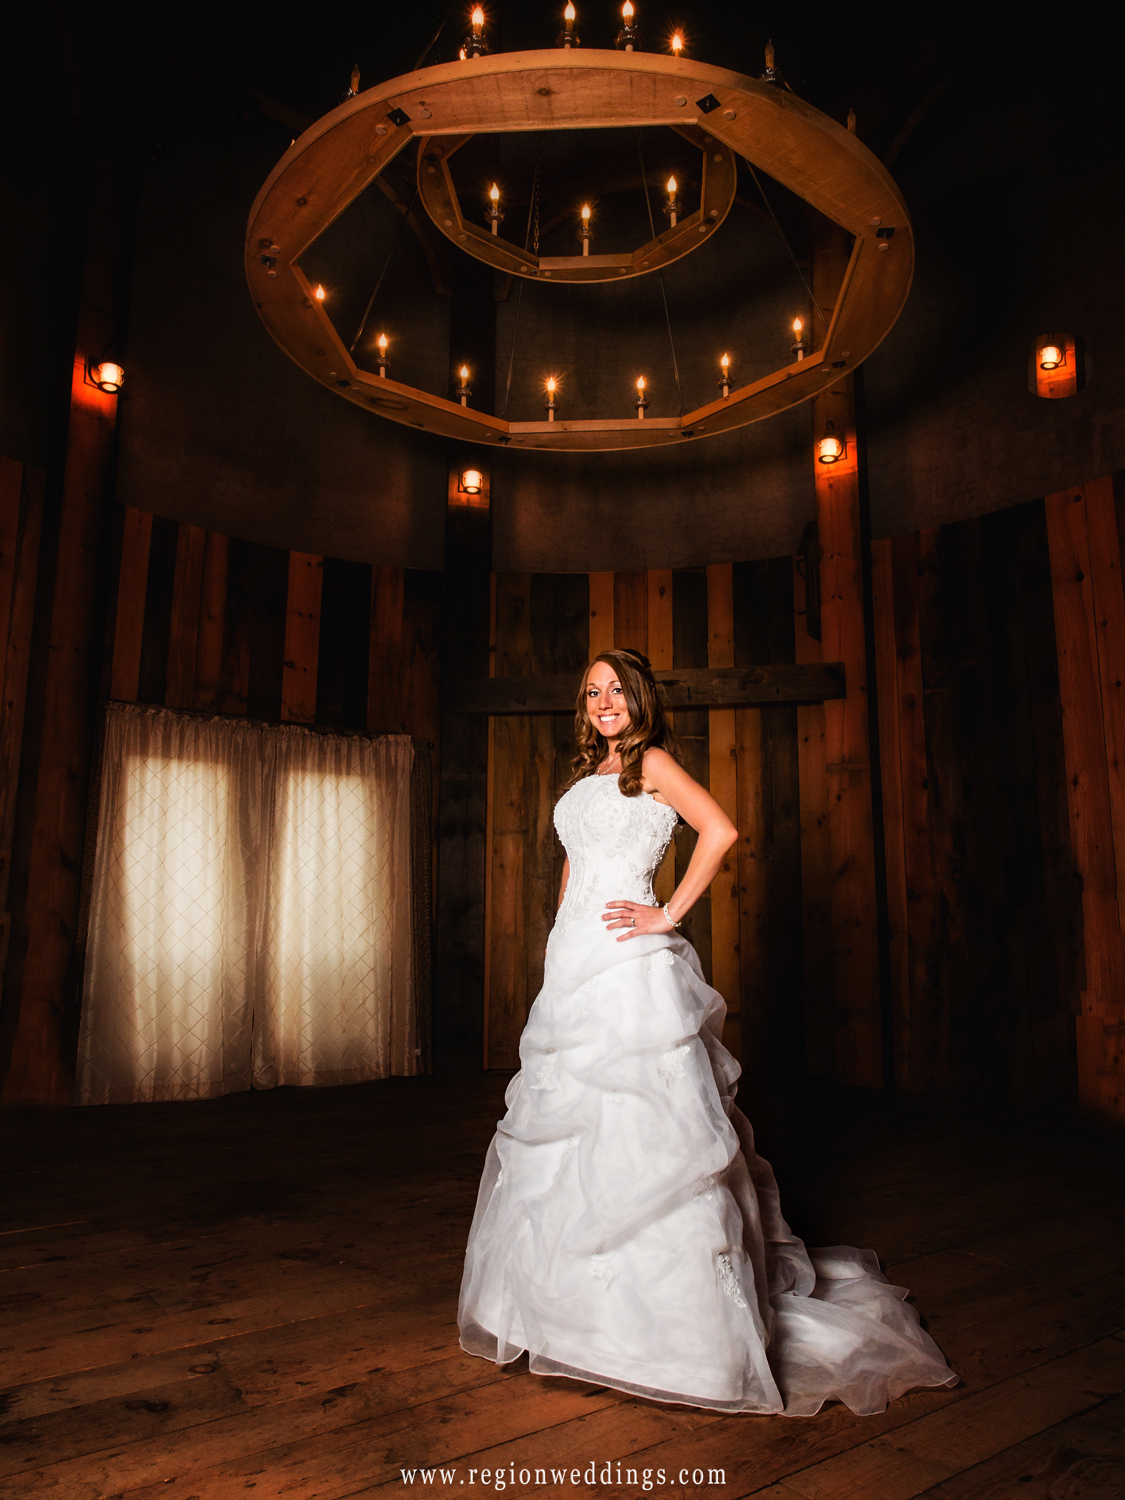 The bride stands beneath a lighted chandelier inside the bridal suite at County Line Orchard in Hobart, Indiana.